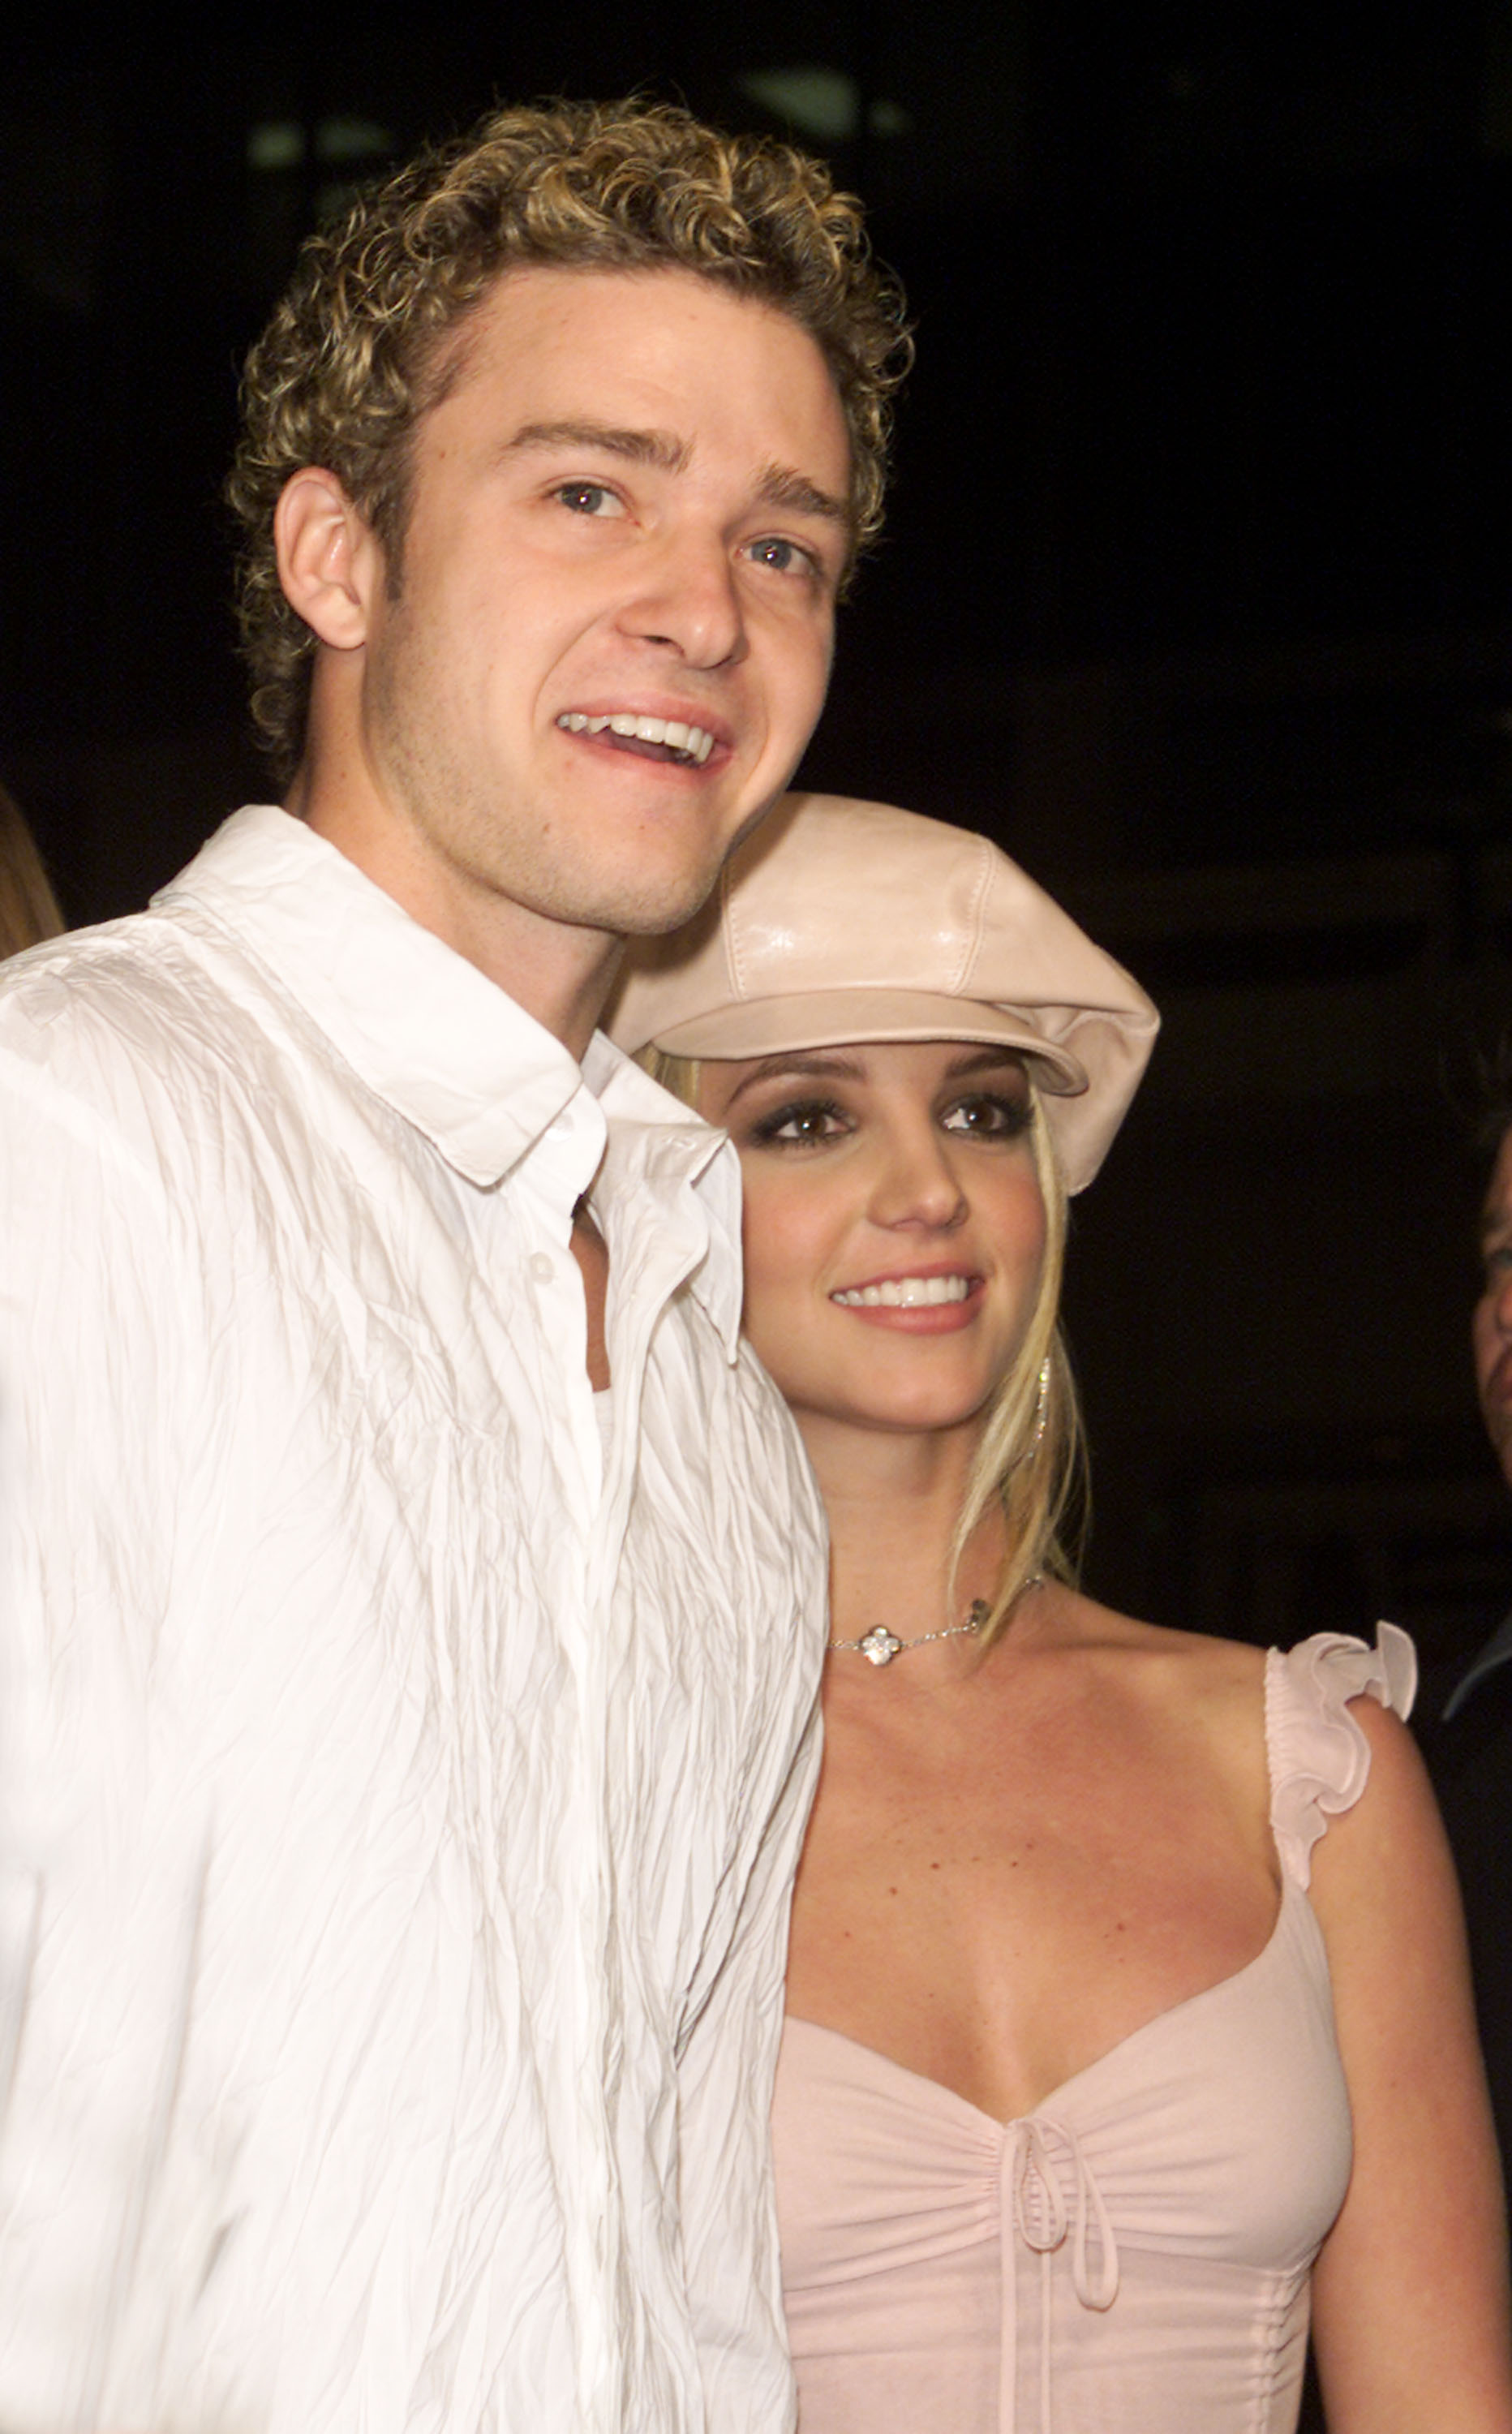 Britney Spears & Justin Timberlake at the Crossroa